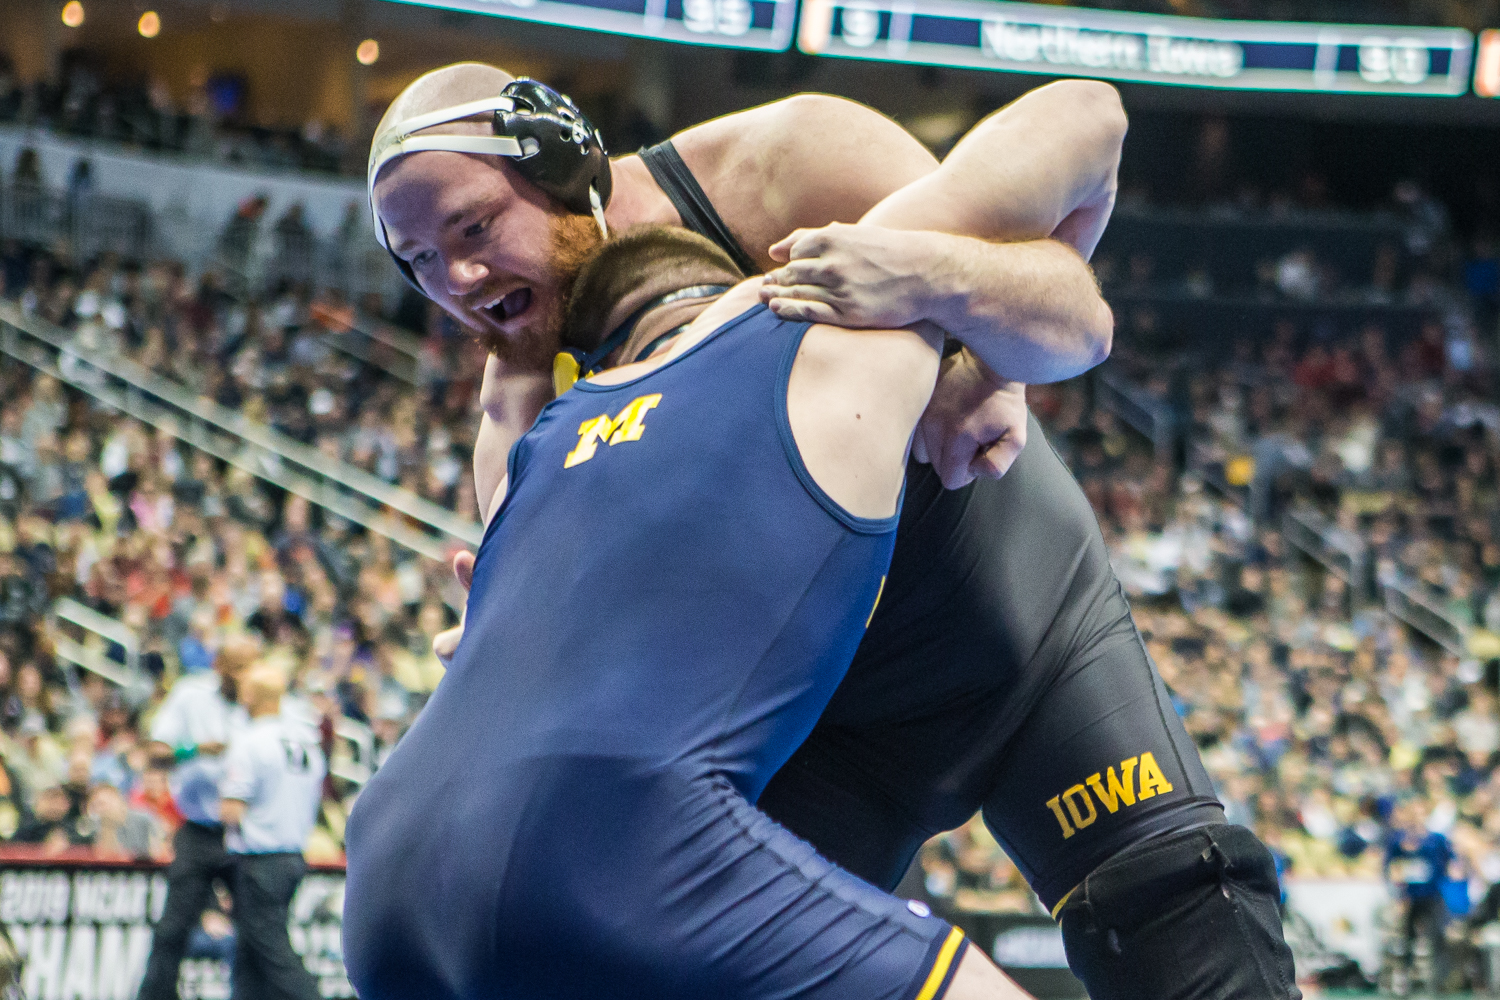 Iowa's 285-pound Sam Stoll wrestles Michigan's Mason Parris during the first session of the 2019 NCAA D1 Wrestling Championships at PPG Arena in Pittsburgh, PA on Thursday, March 21, 2019. Stoll won by decision, 8-5.